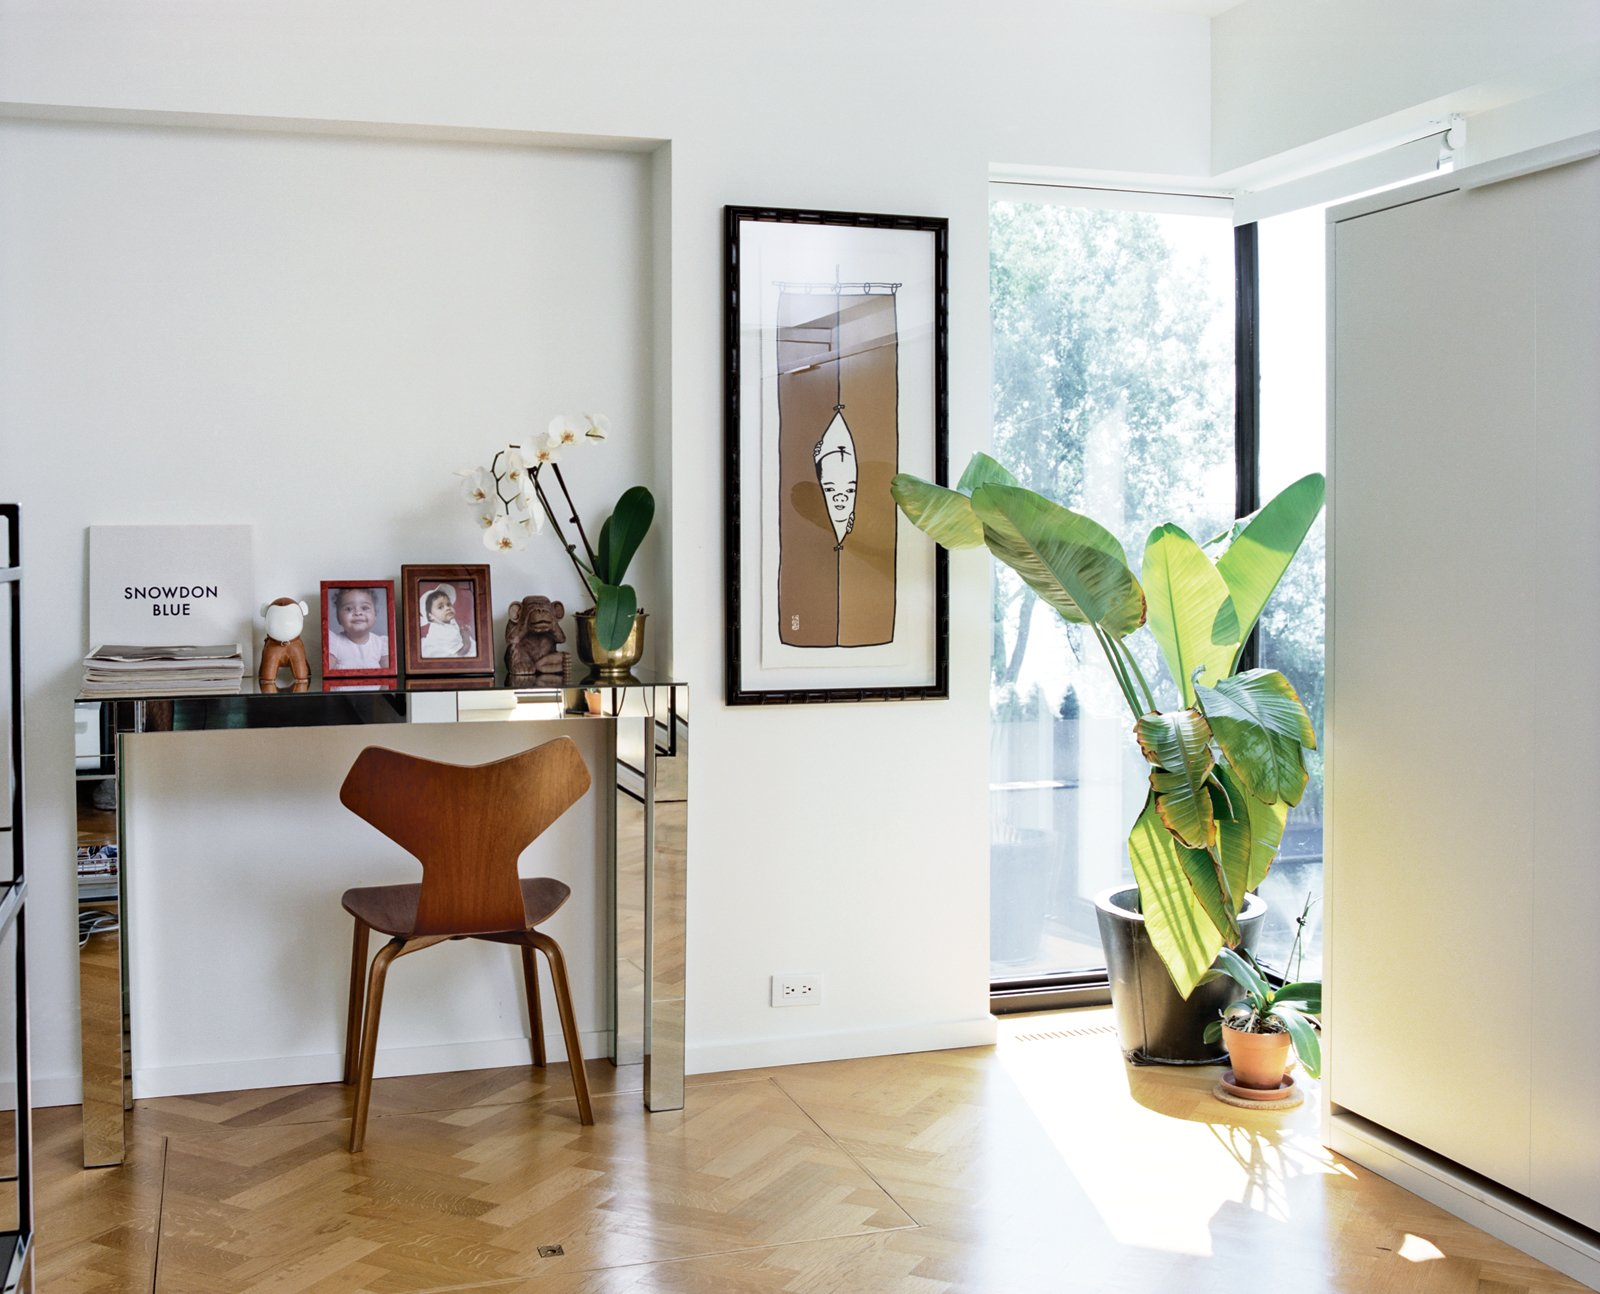 They restored small alcoves to rooms including the office (shown here) and living room and worked carefully with the existing windows. They also hunted down a craftsman, Marc Ablasou, to install oak floors in a herringbone pattern—a touch that subtly complicates Safdie's aesthetic. In the office, the mirrored console is vintage and the Grand Prix chair is by Arne Jacobsen for Fritz Hansen. Tagged: Living Room and Chair.  Photo 5 of 9 in A Renovated Flat in Moshe Safdie's Habitat '67